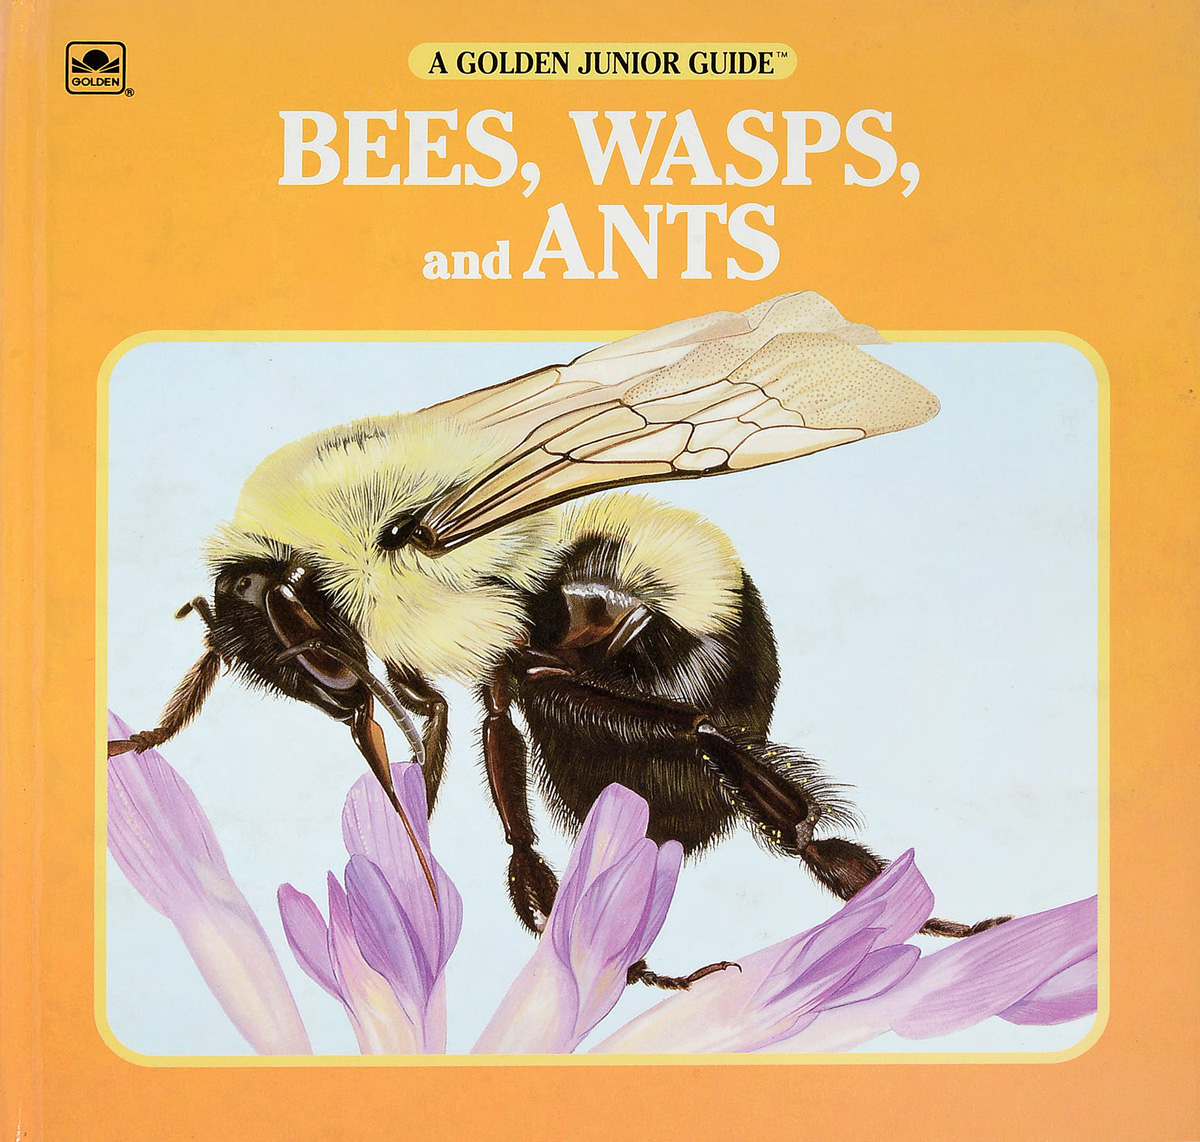 George S. Fichter Bees, Wasps and Ants